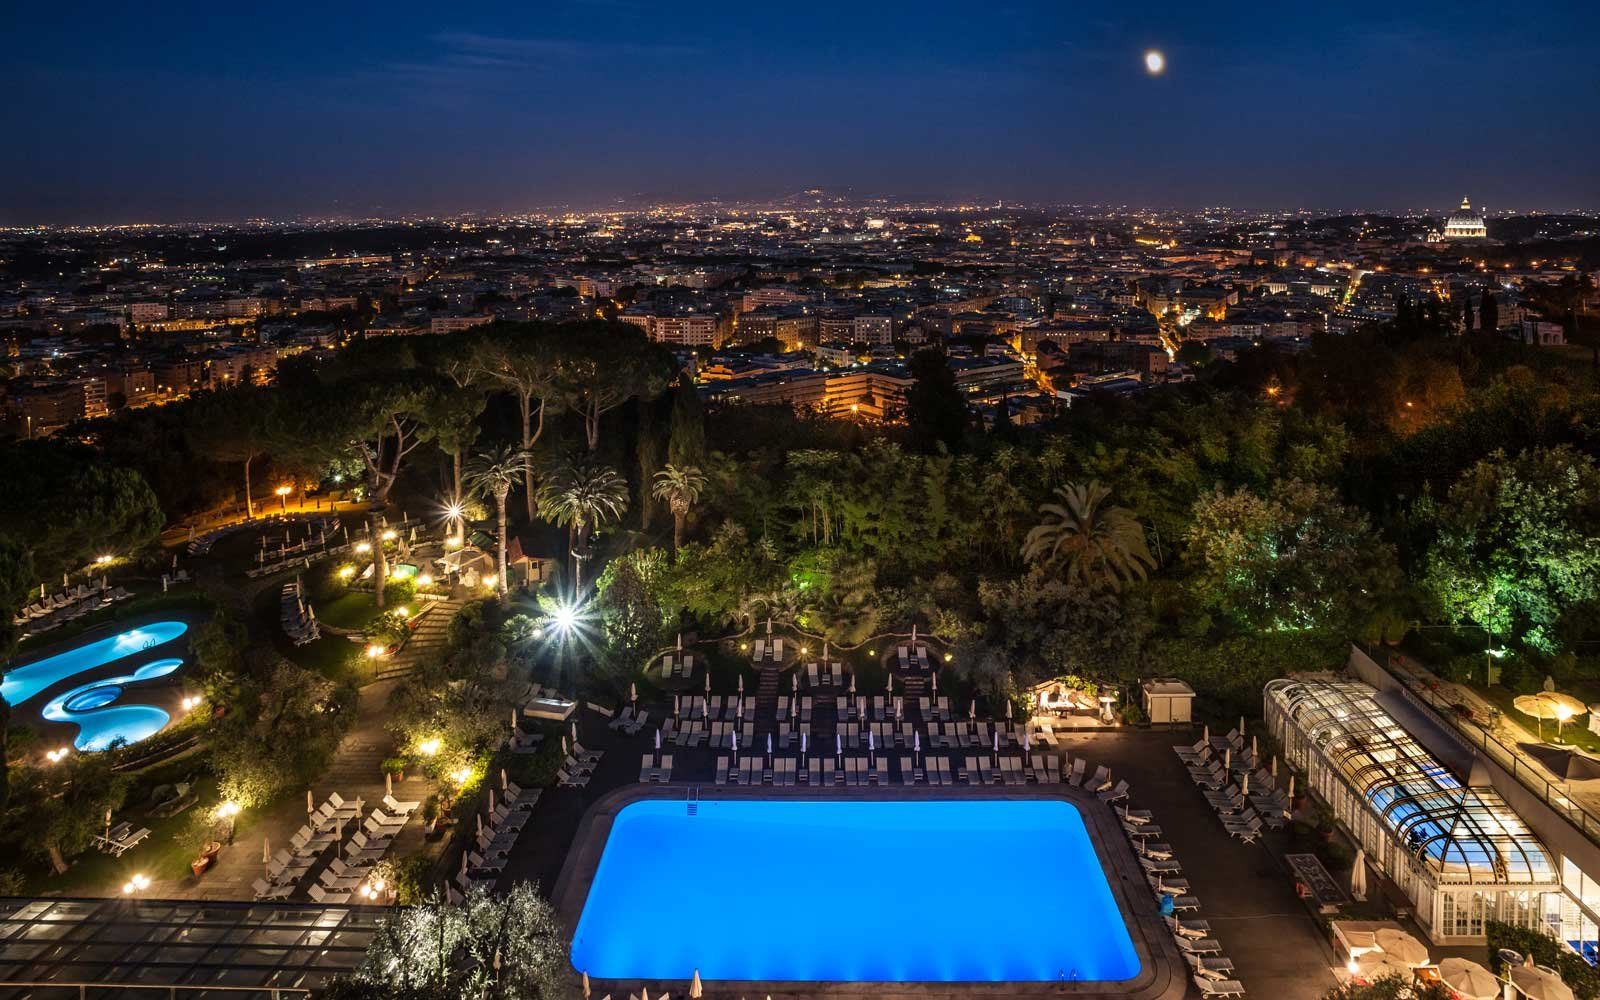 Hotels in Rome World's Best 2019 (With images) Rome hotels